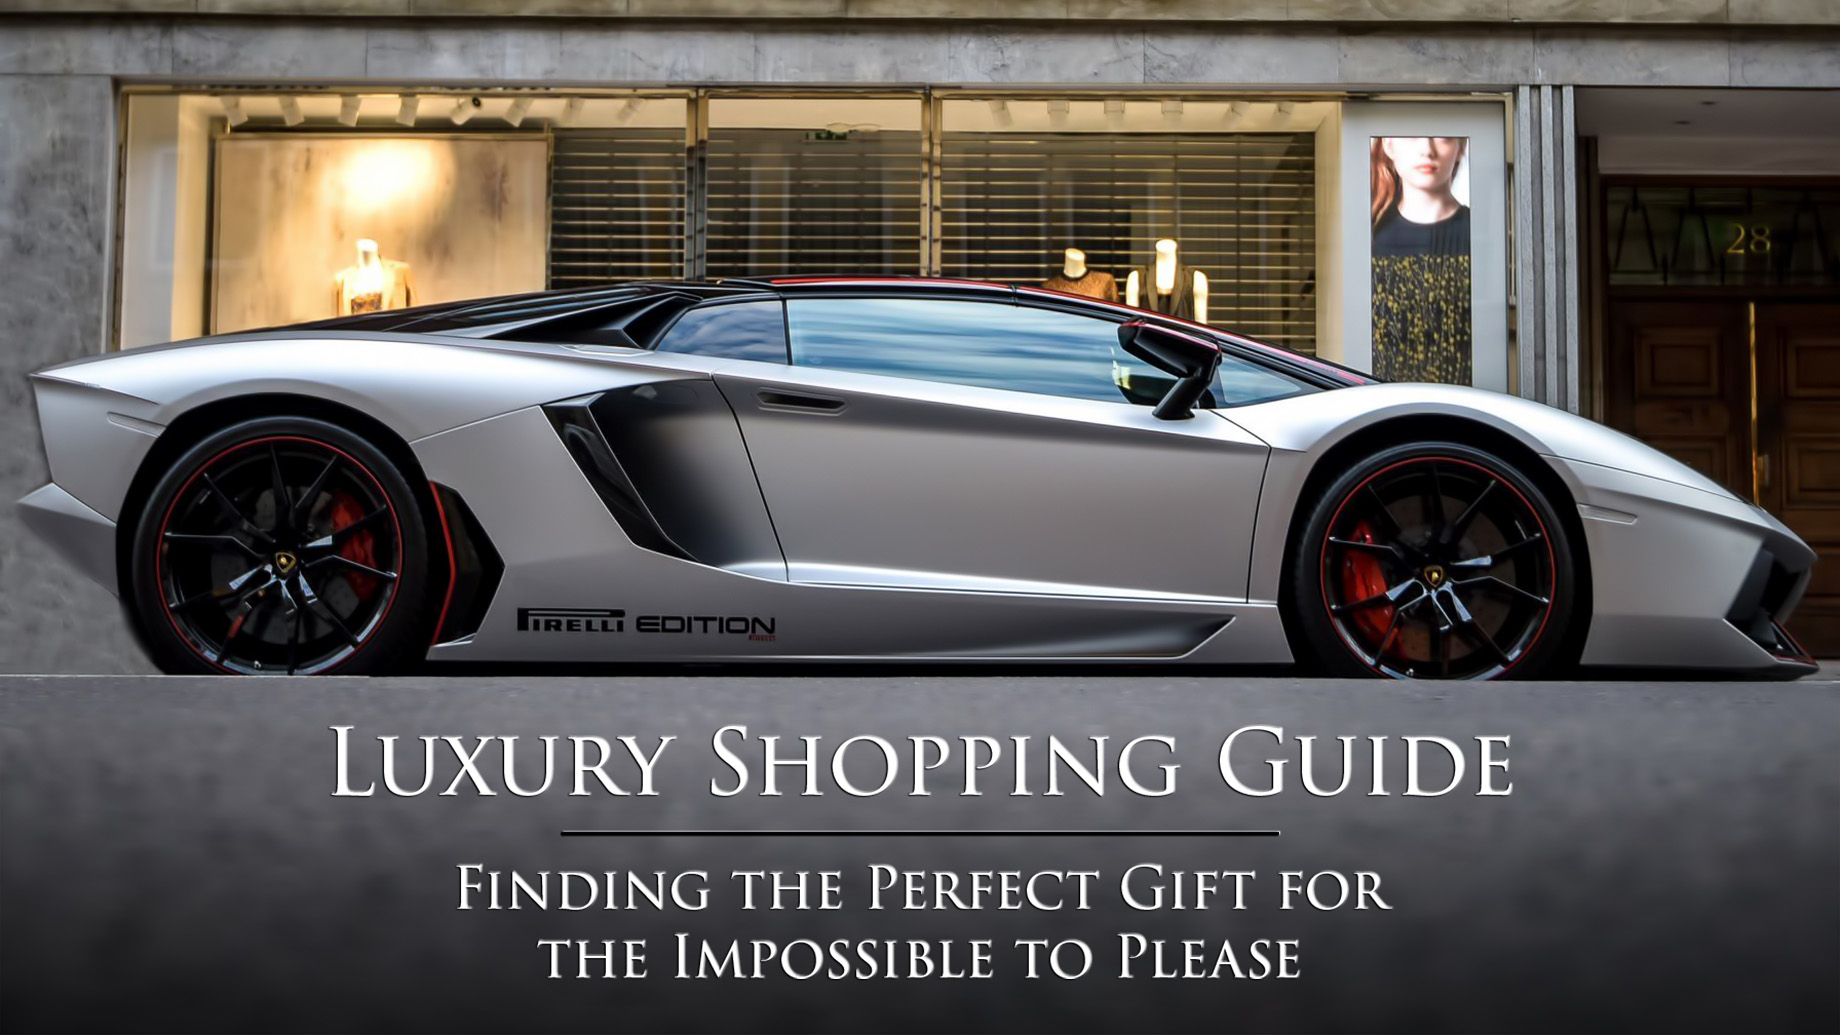 Luxury Shopping Guide - Finding the Perfect Gift for the Impossible to Please